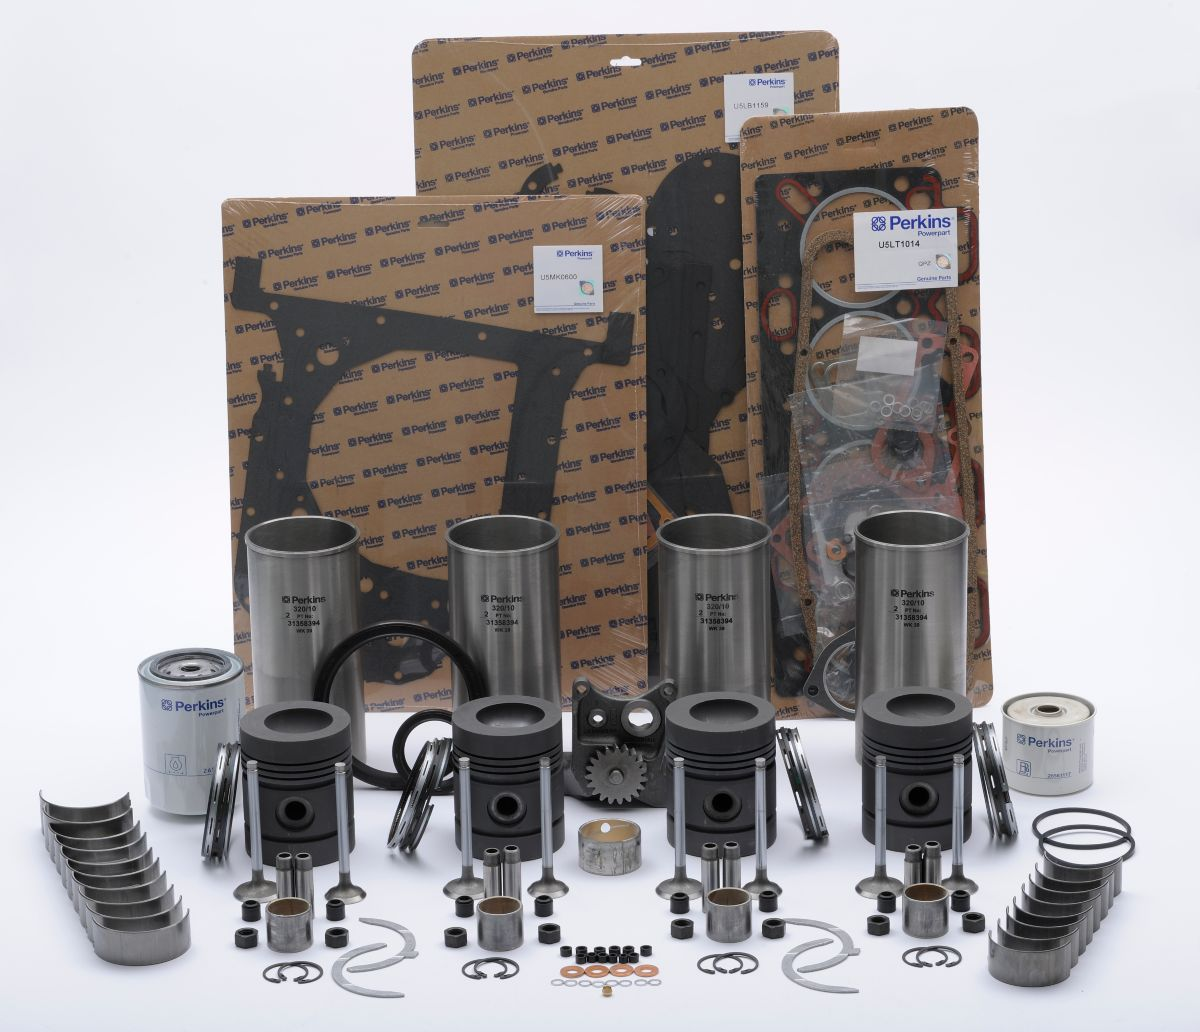 Overhaul kits: the complete package